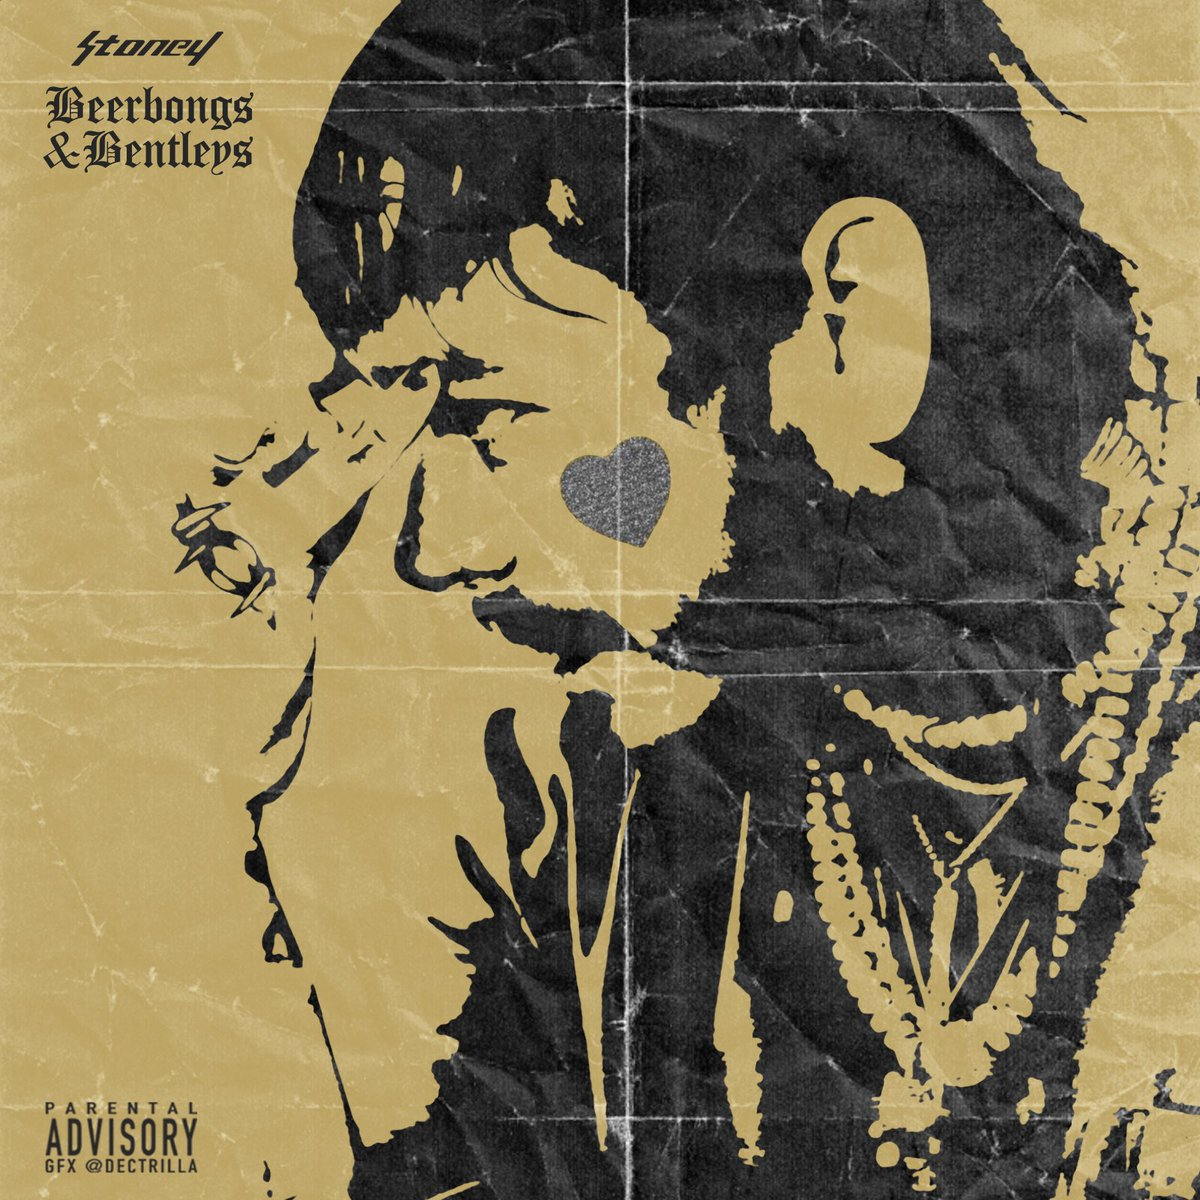 Dec Trilla On Twitter Album Cover And Booklet Artwork Concepts For The Upcoming Project From Postmalone Beerbongs Bentleys Stoney Postmalone Beerbongsandbentleys Https T Co Nskfbwrecs